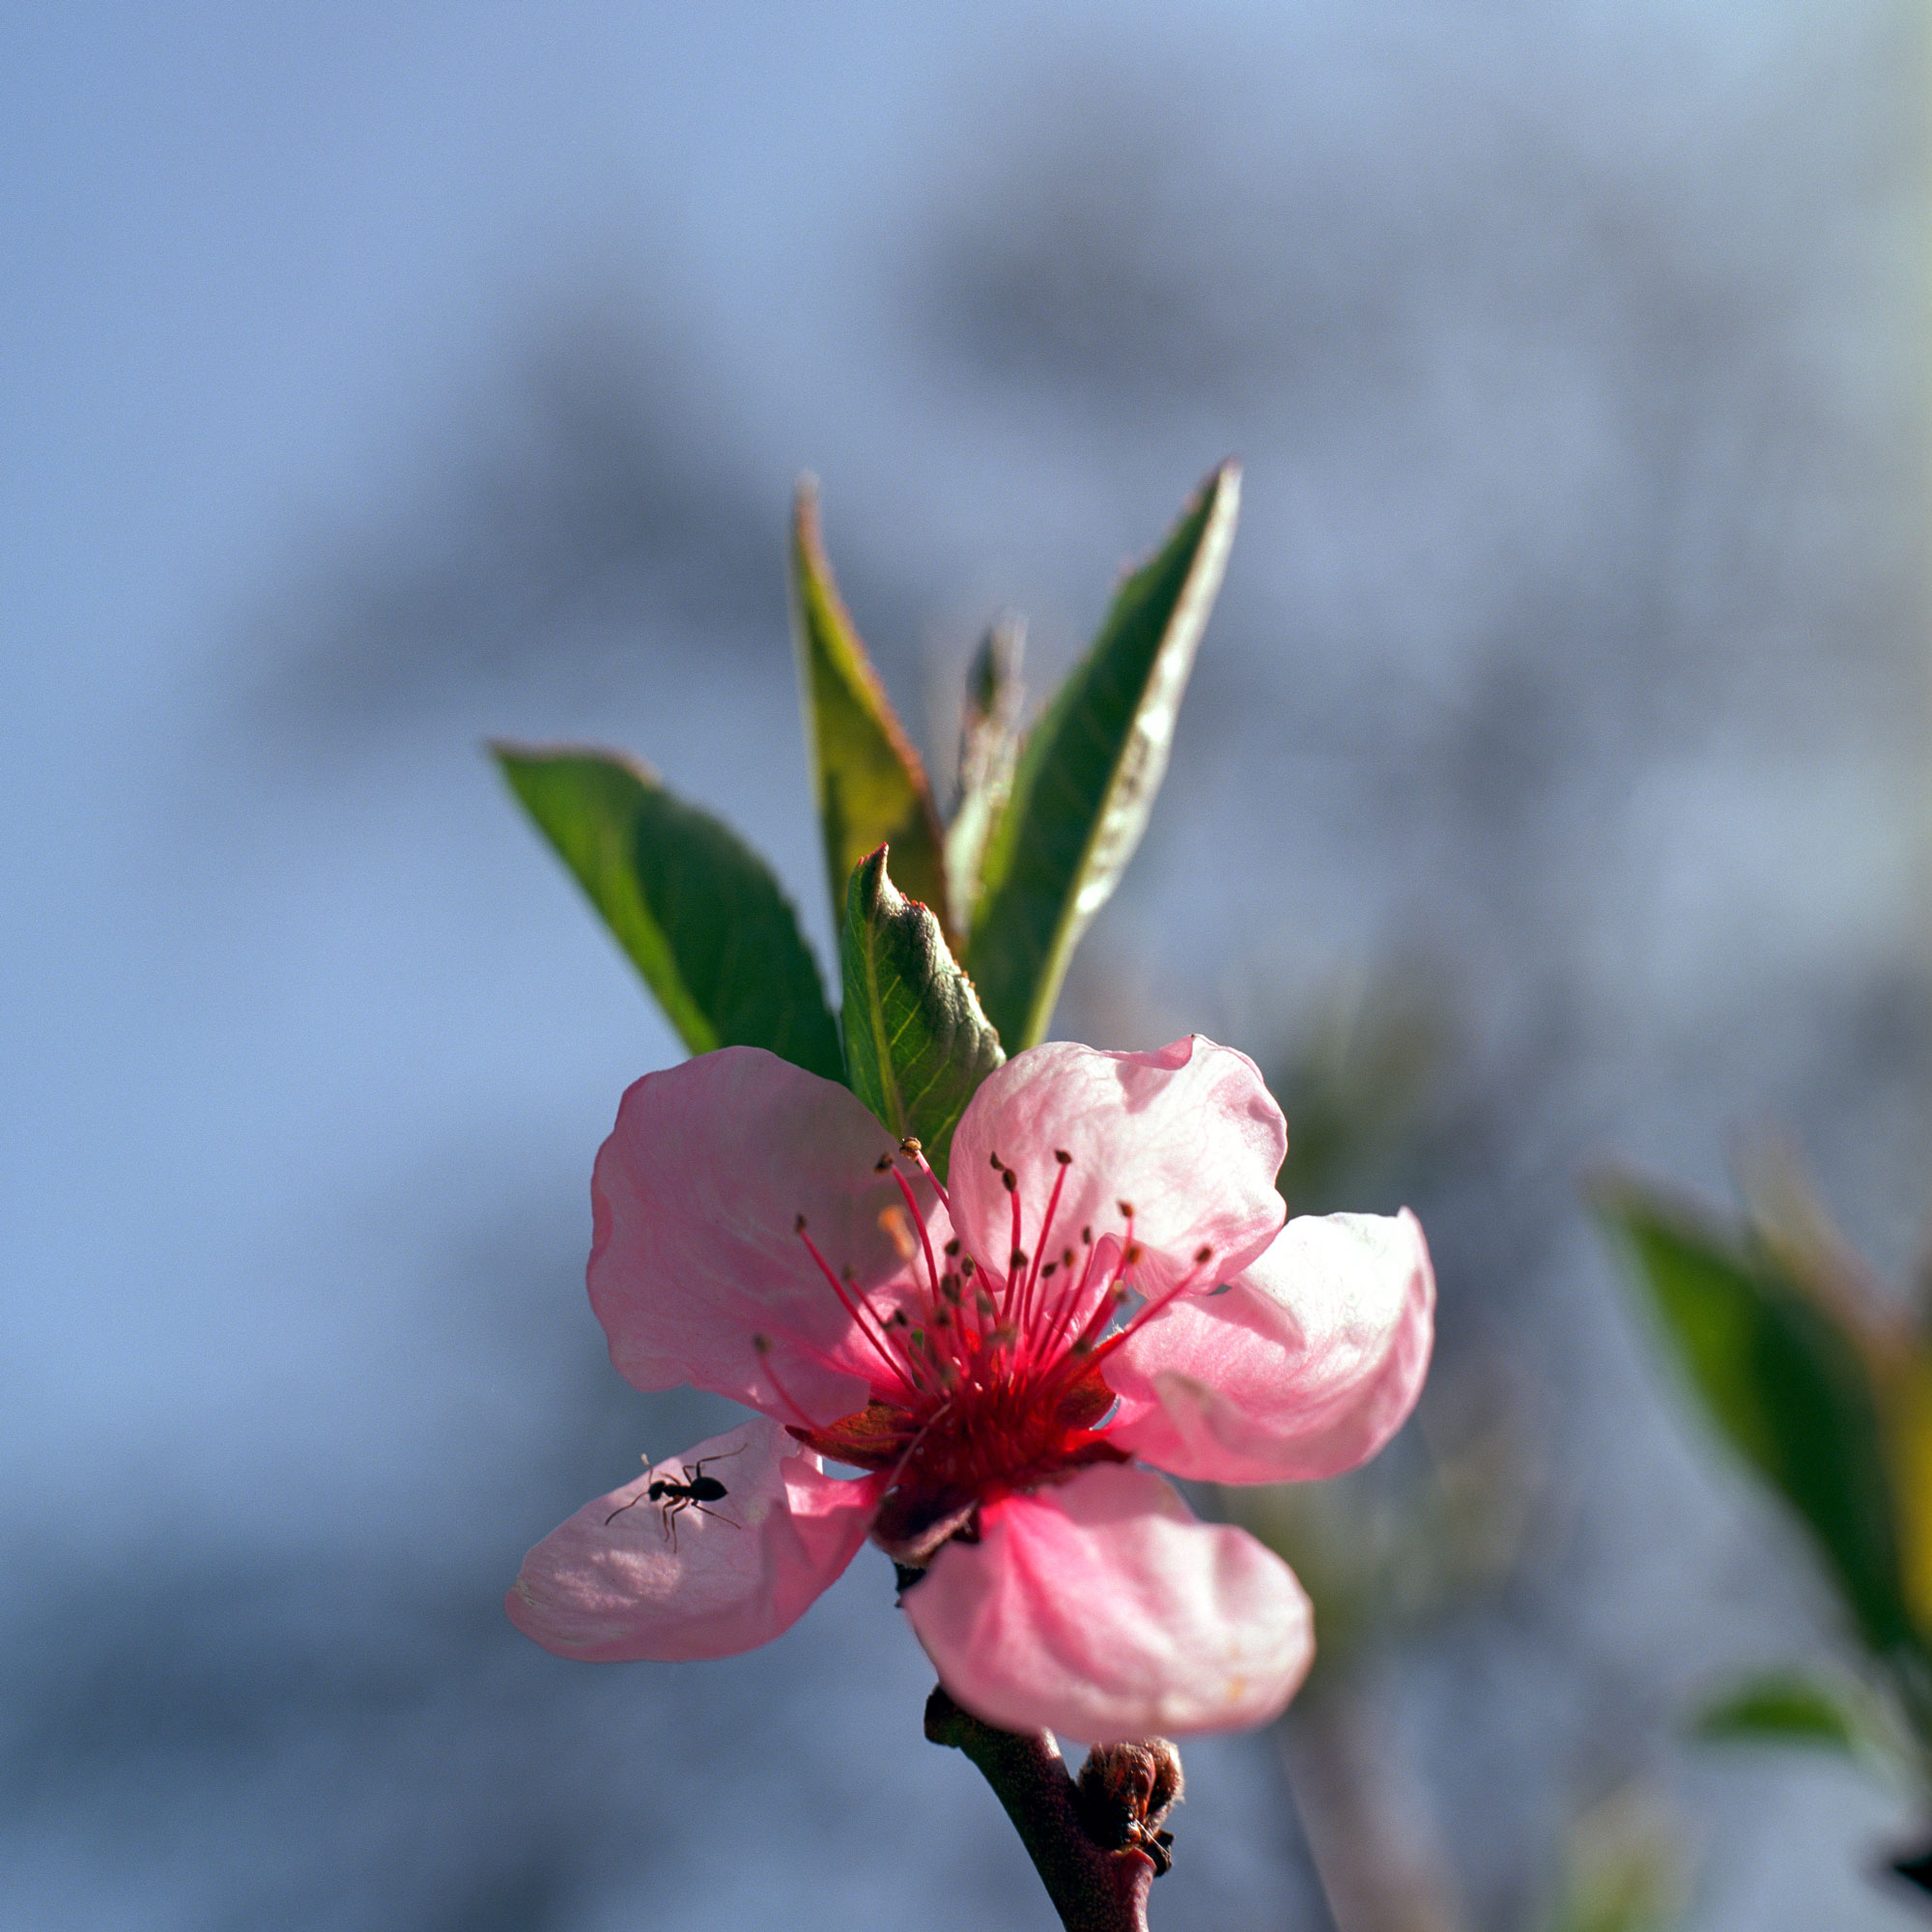 Cherry blossom with ant